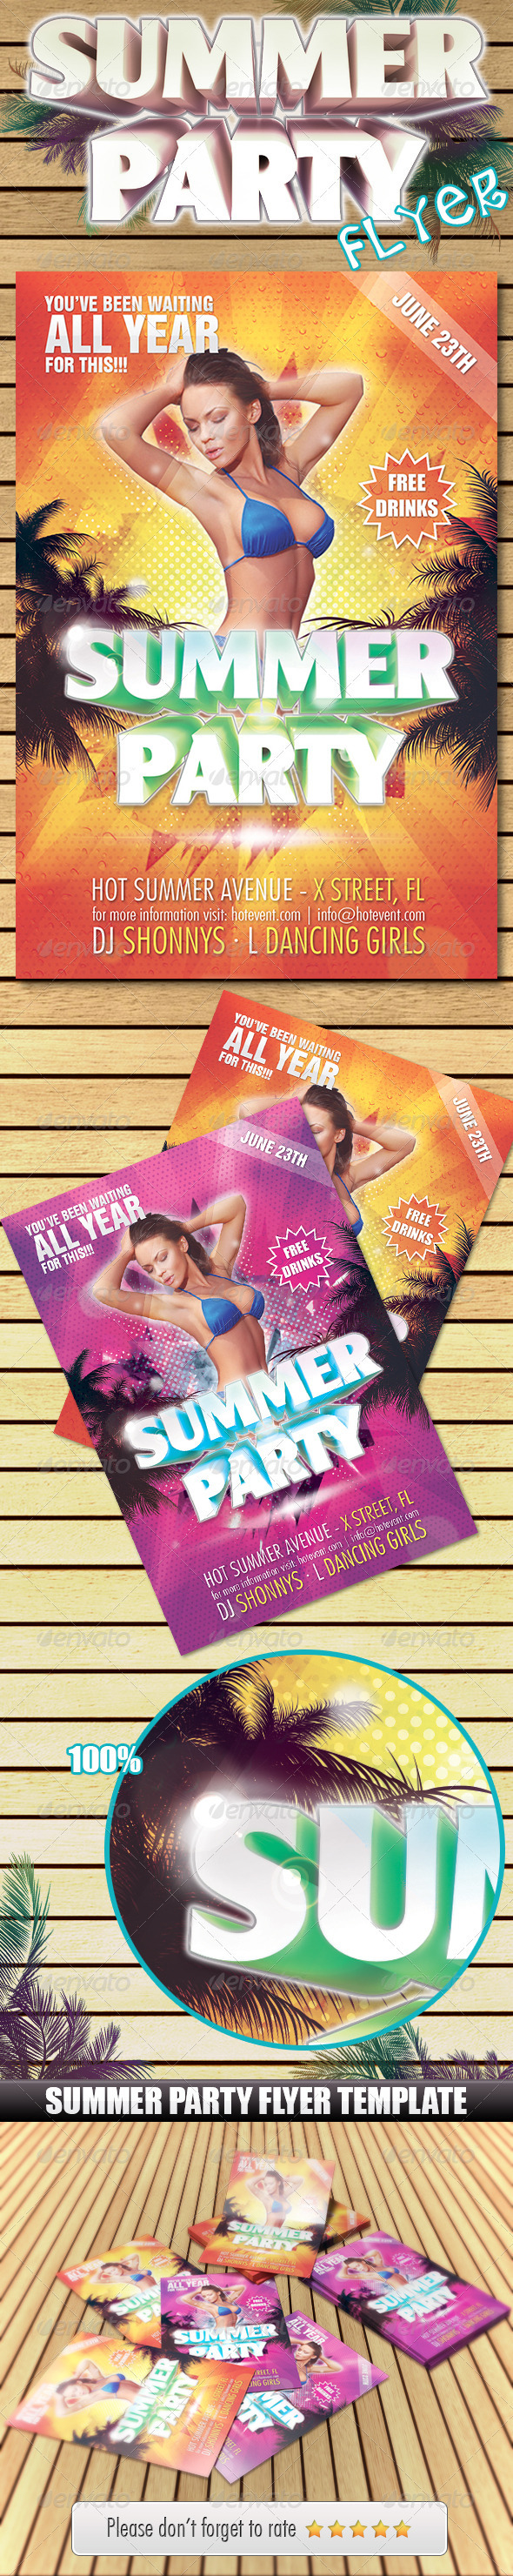 GraphicRiver Summer Party Flyer 2397741